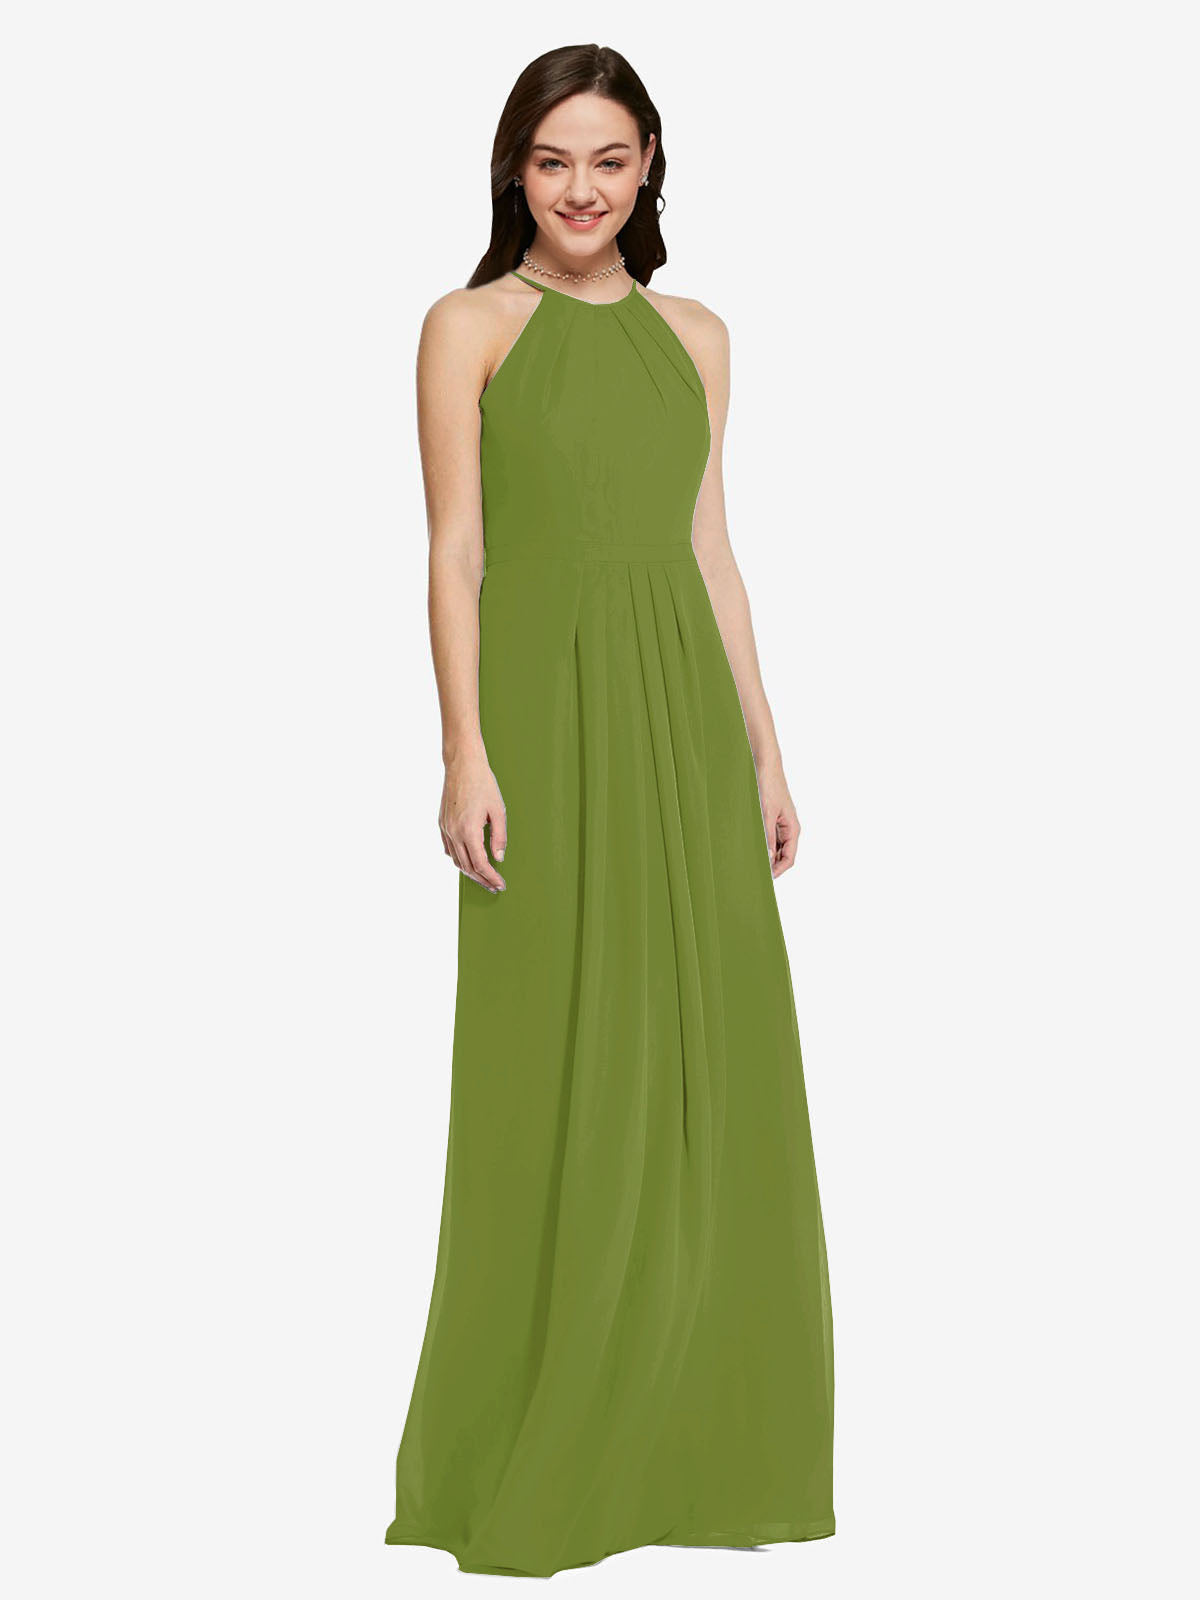 Long Sheath High Neck Halter Sleeveless Olive Green Chiffon Bridesmaid Dress Koloti